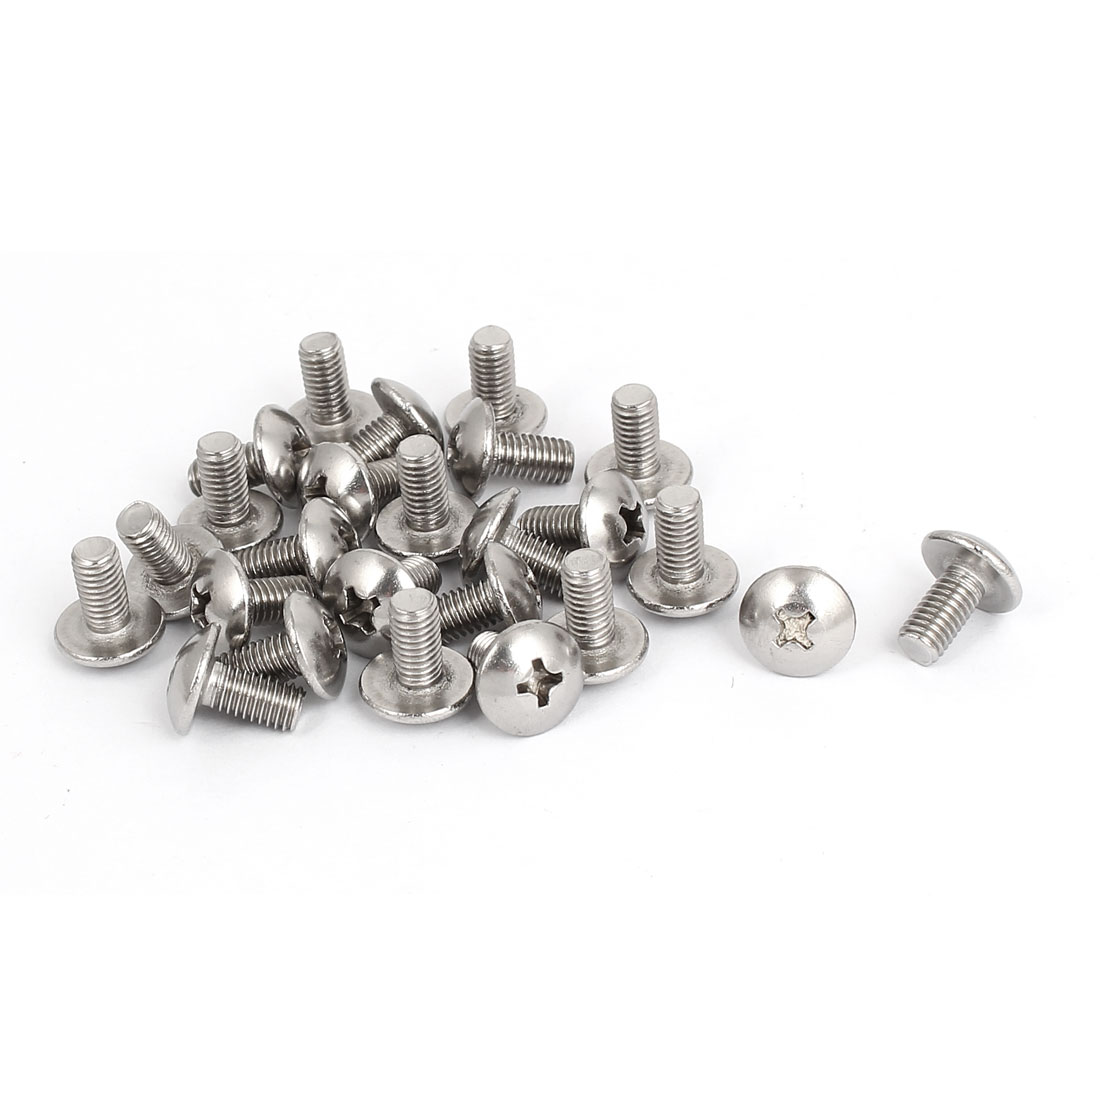 M5x10mm Stainless Steel Truss Phillips Head Machine Screws 25pcs